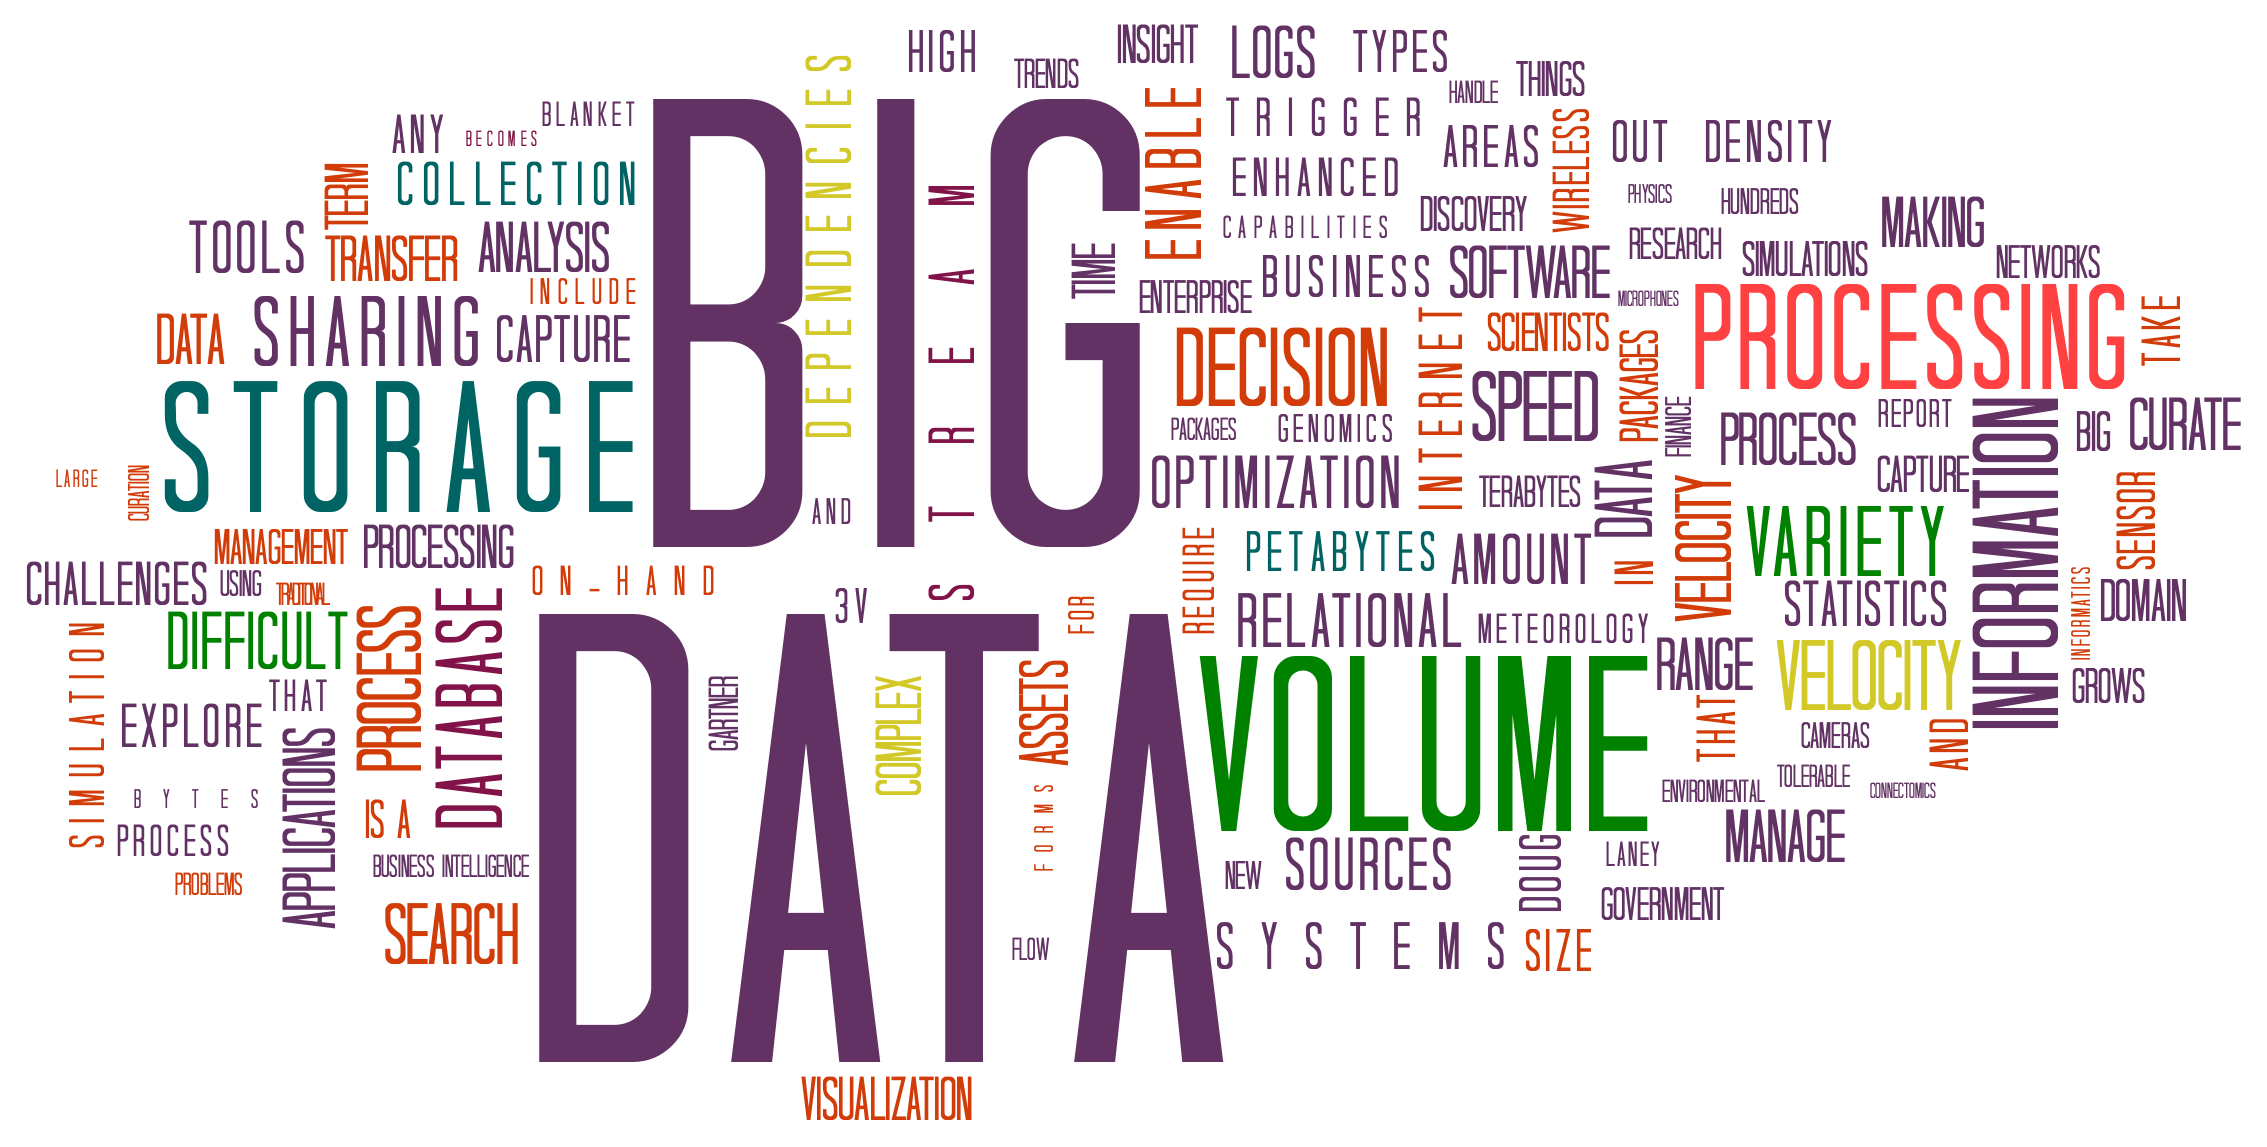 Displaying BigData_2267x1146_white.png